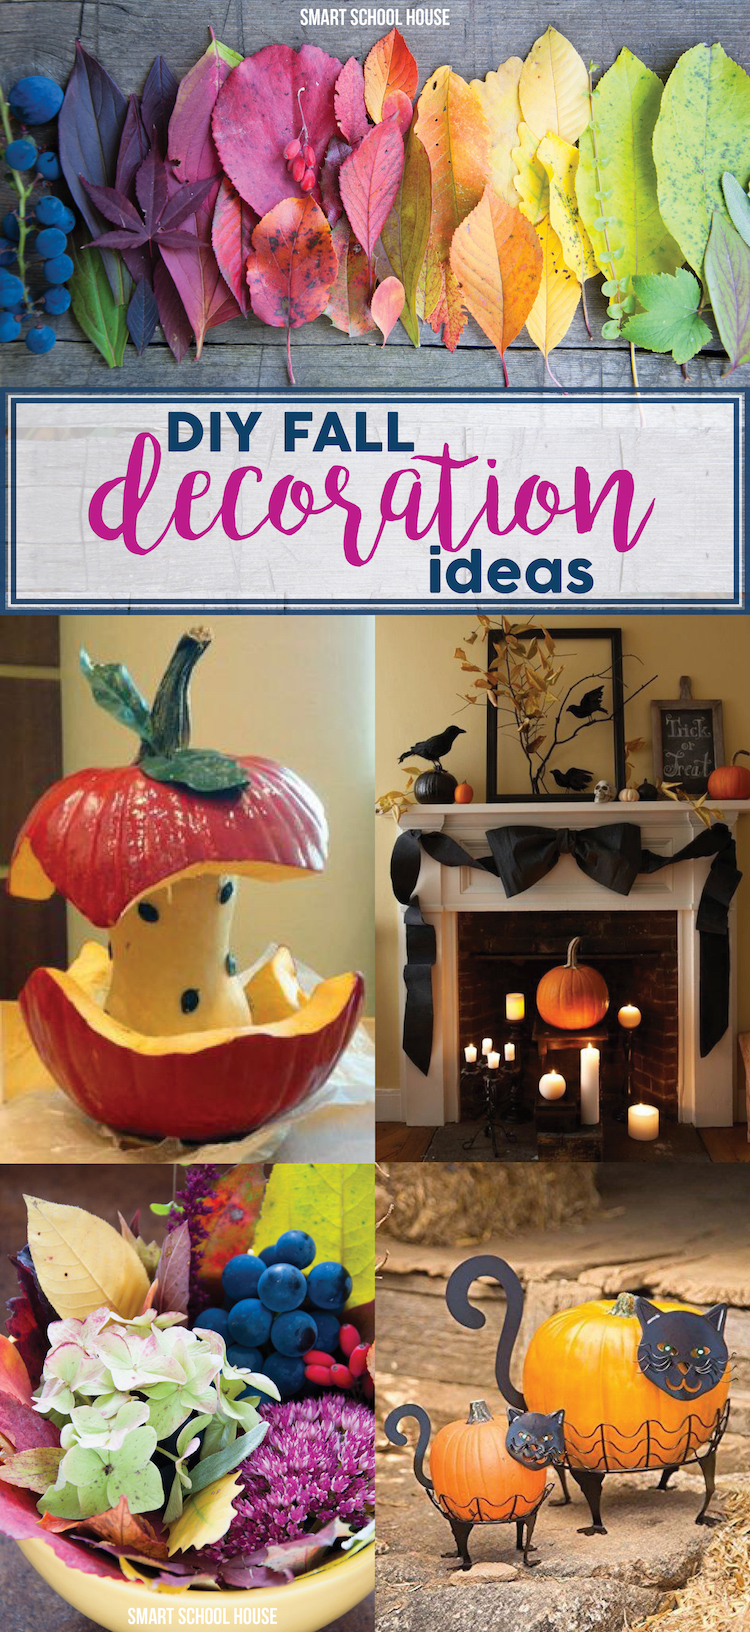 Decorating Ideas For Rentals: DIY Fall Decoration Ideas